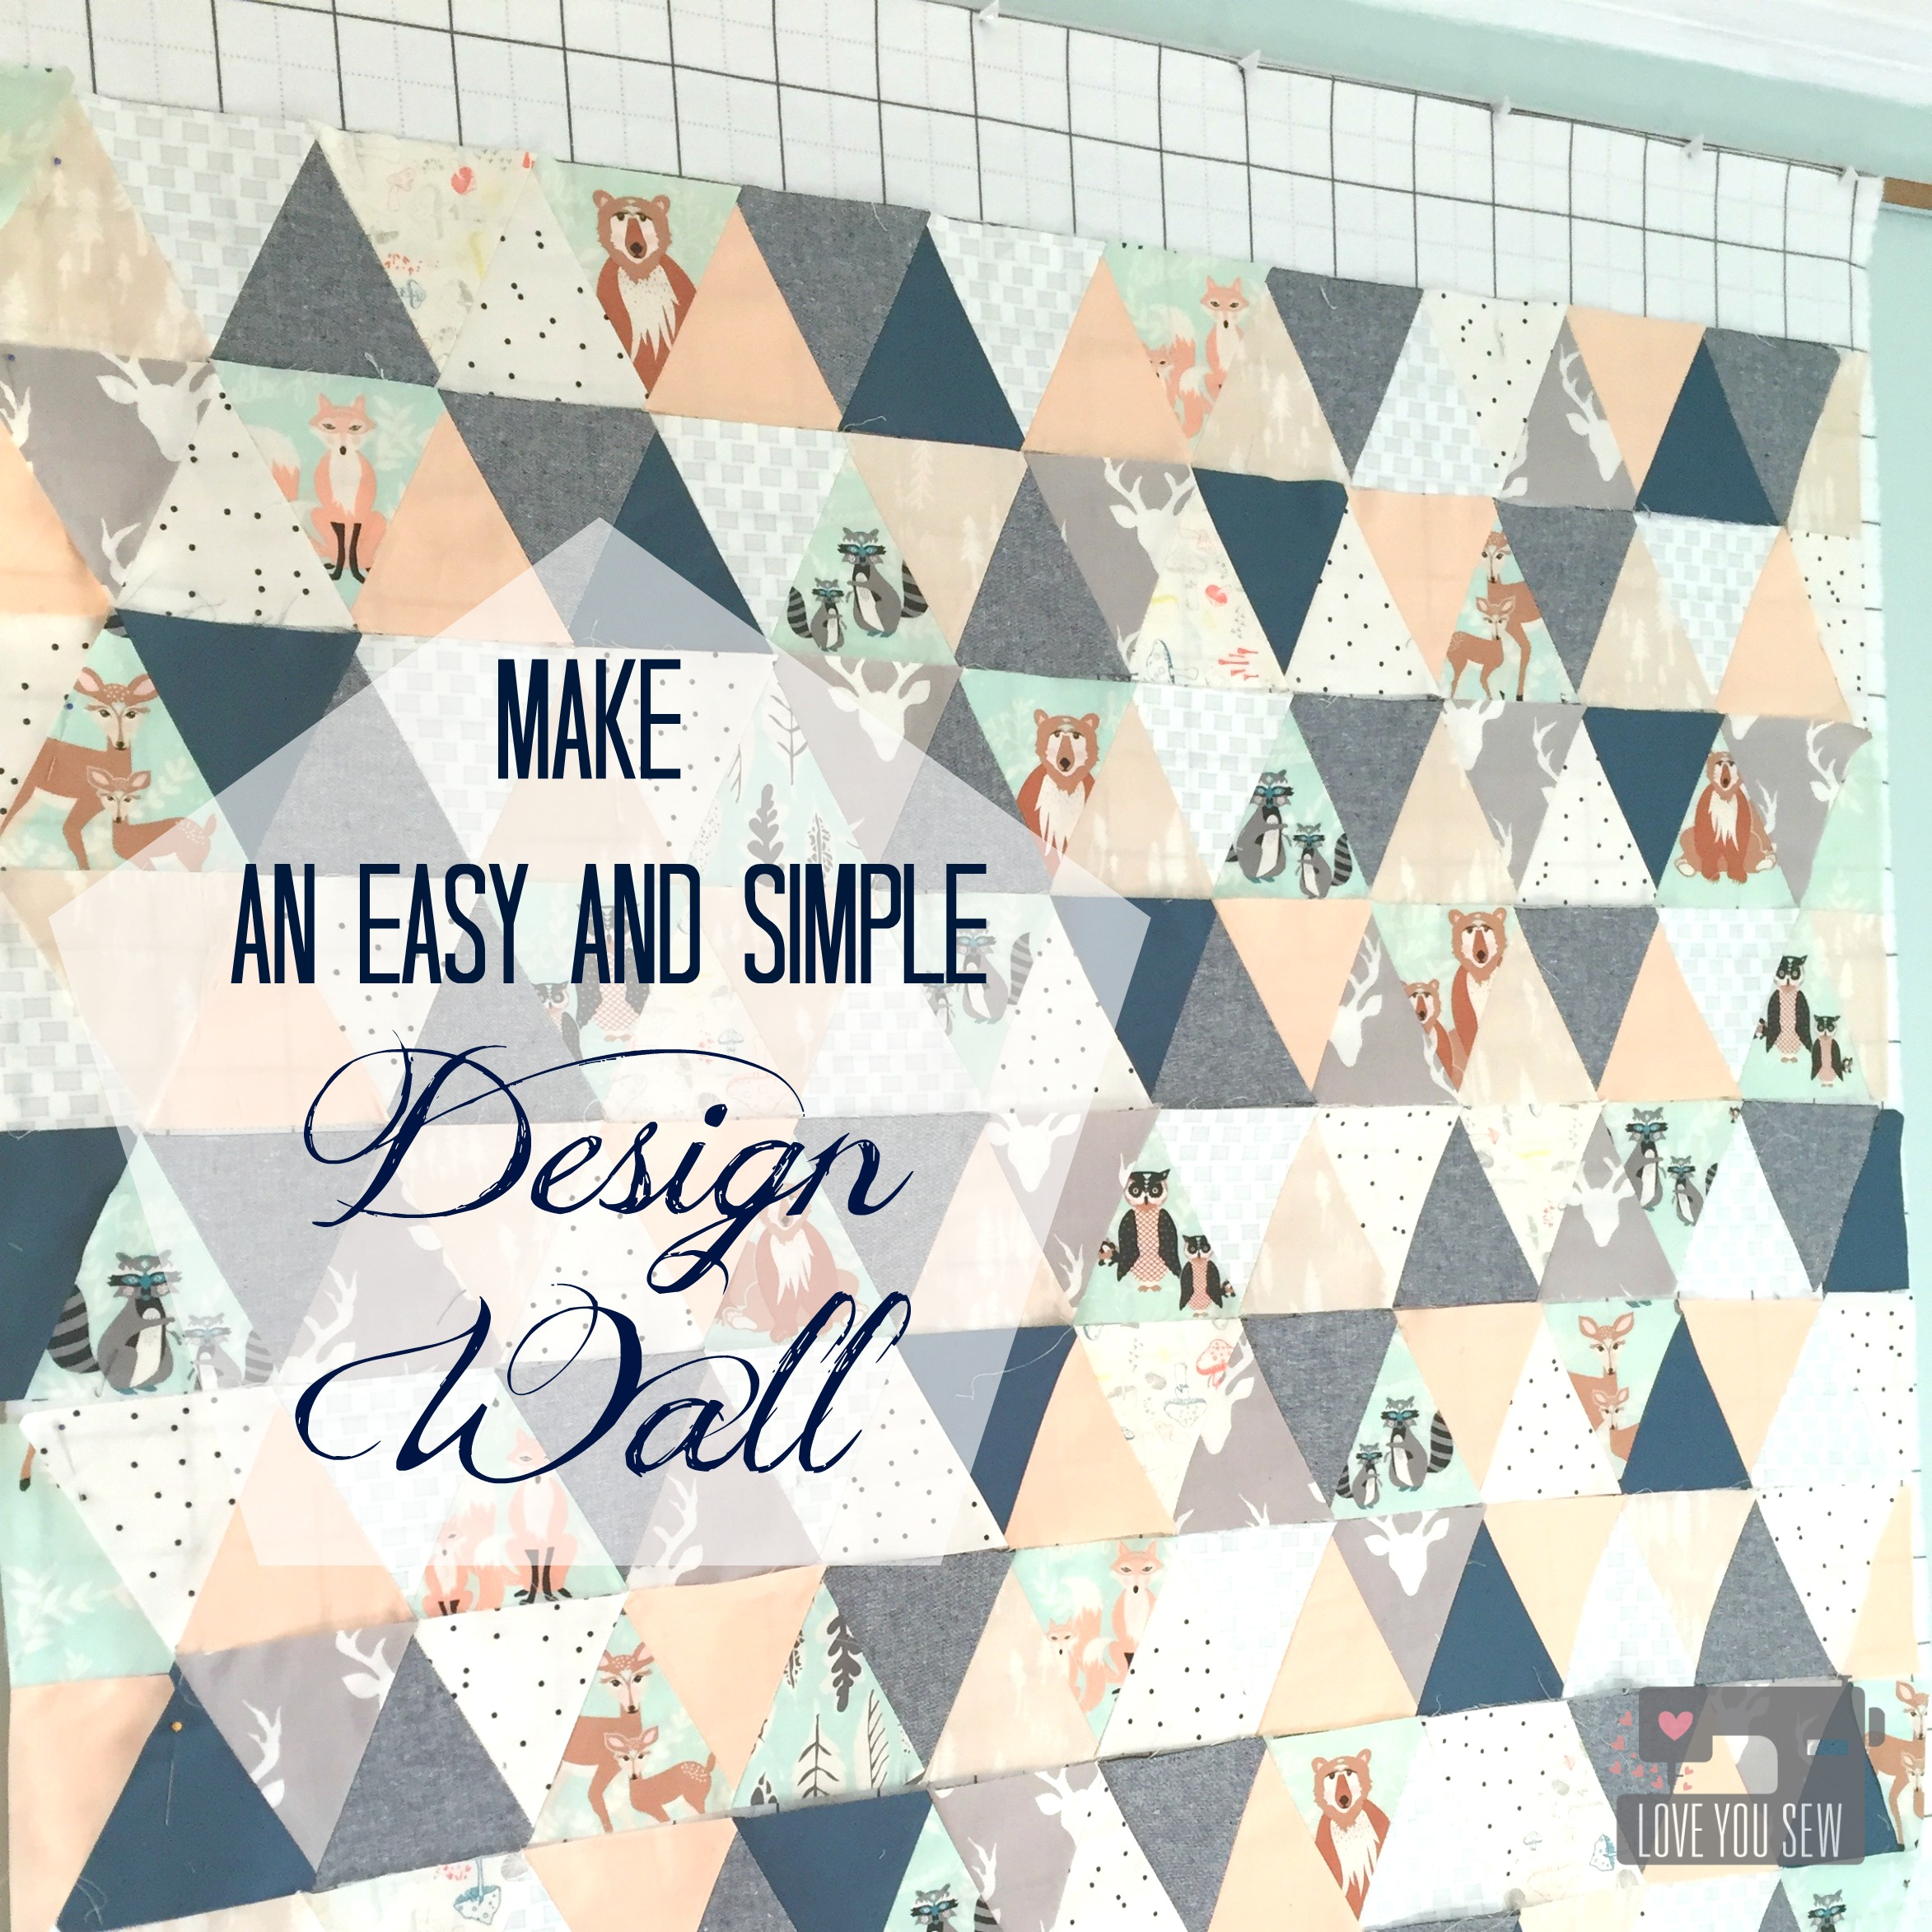 Design Wall Title